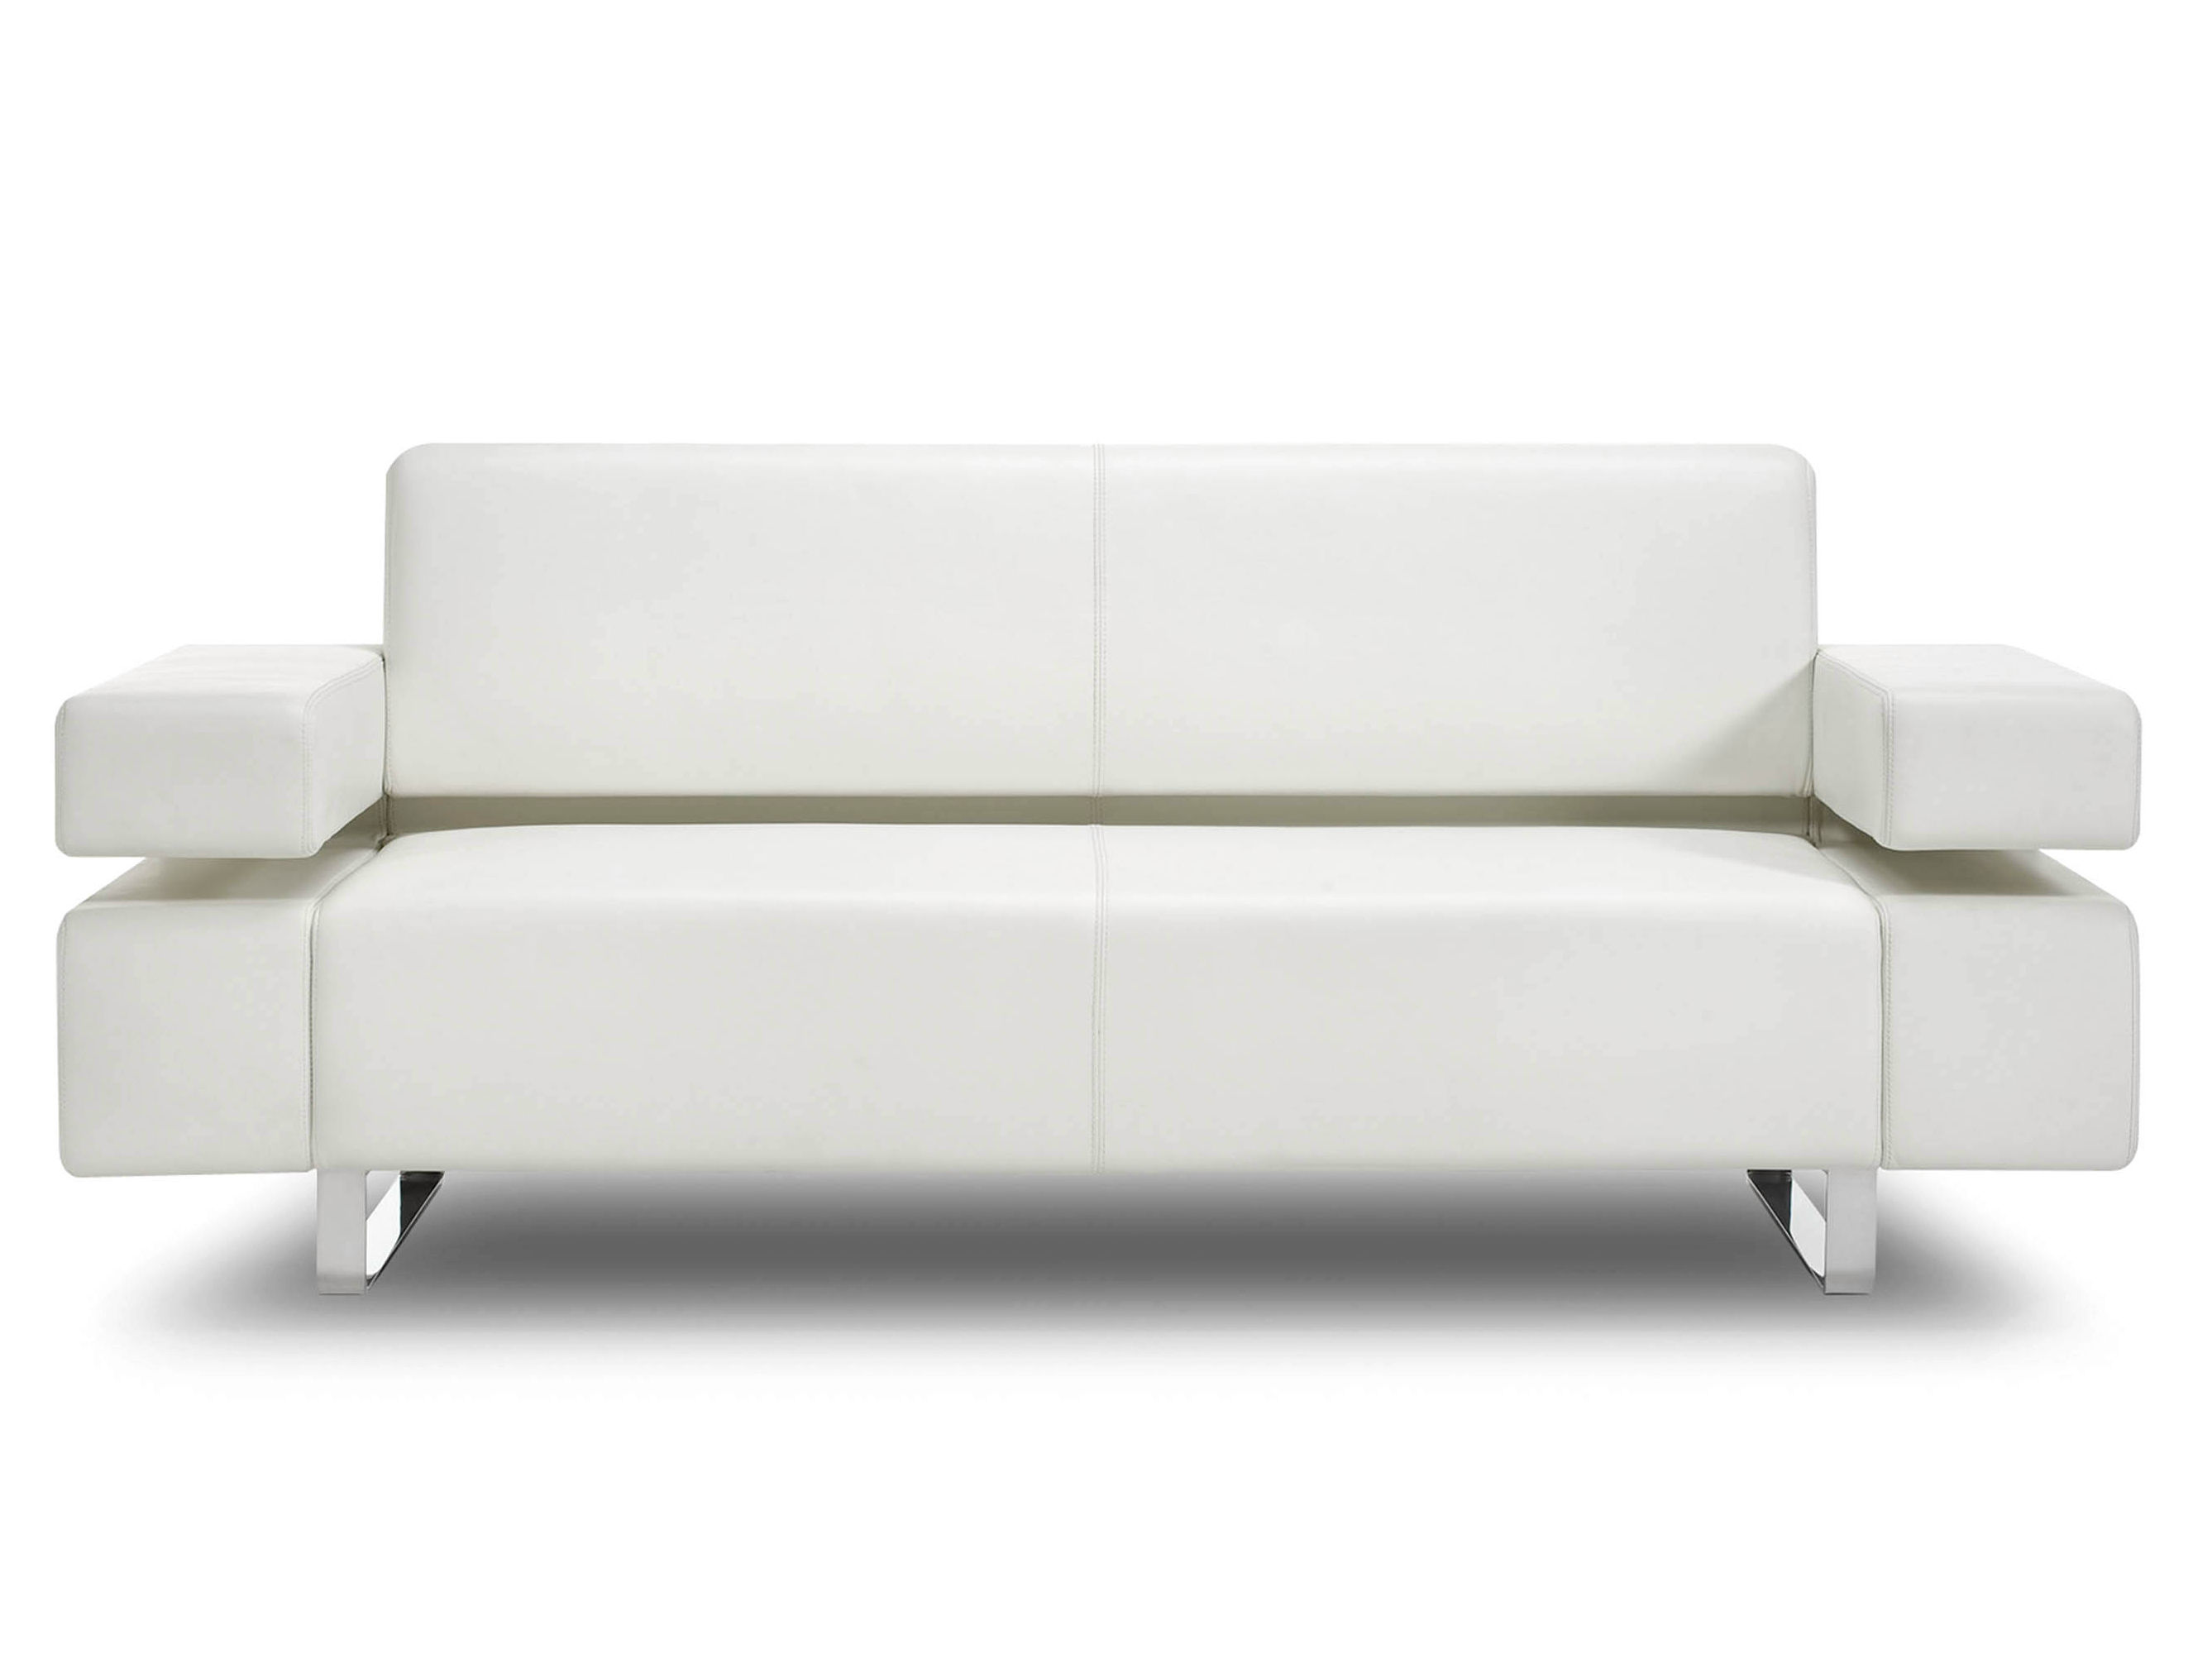 Sled base 2 seater leather sofa MONACO | 2 seater sofa Monaco Collection By  Rshults design BRDA - BROBERG & RIDDERSTRLE